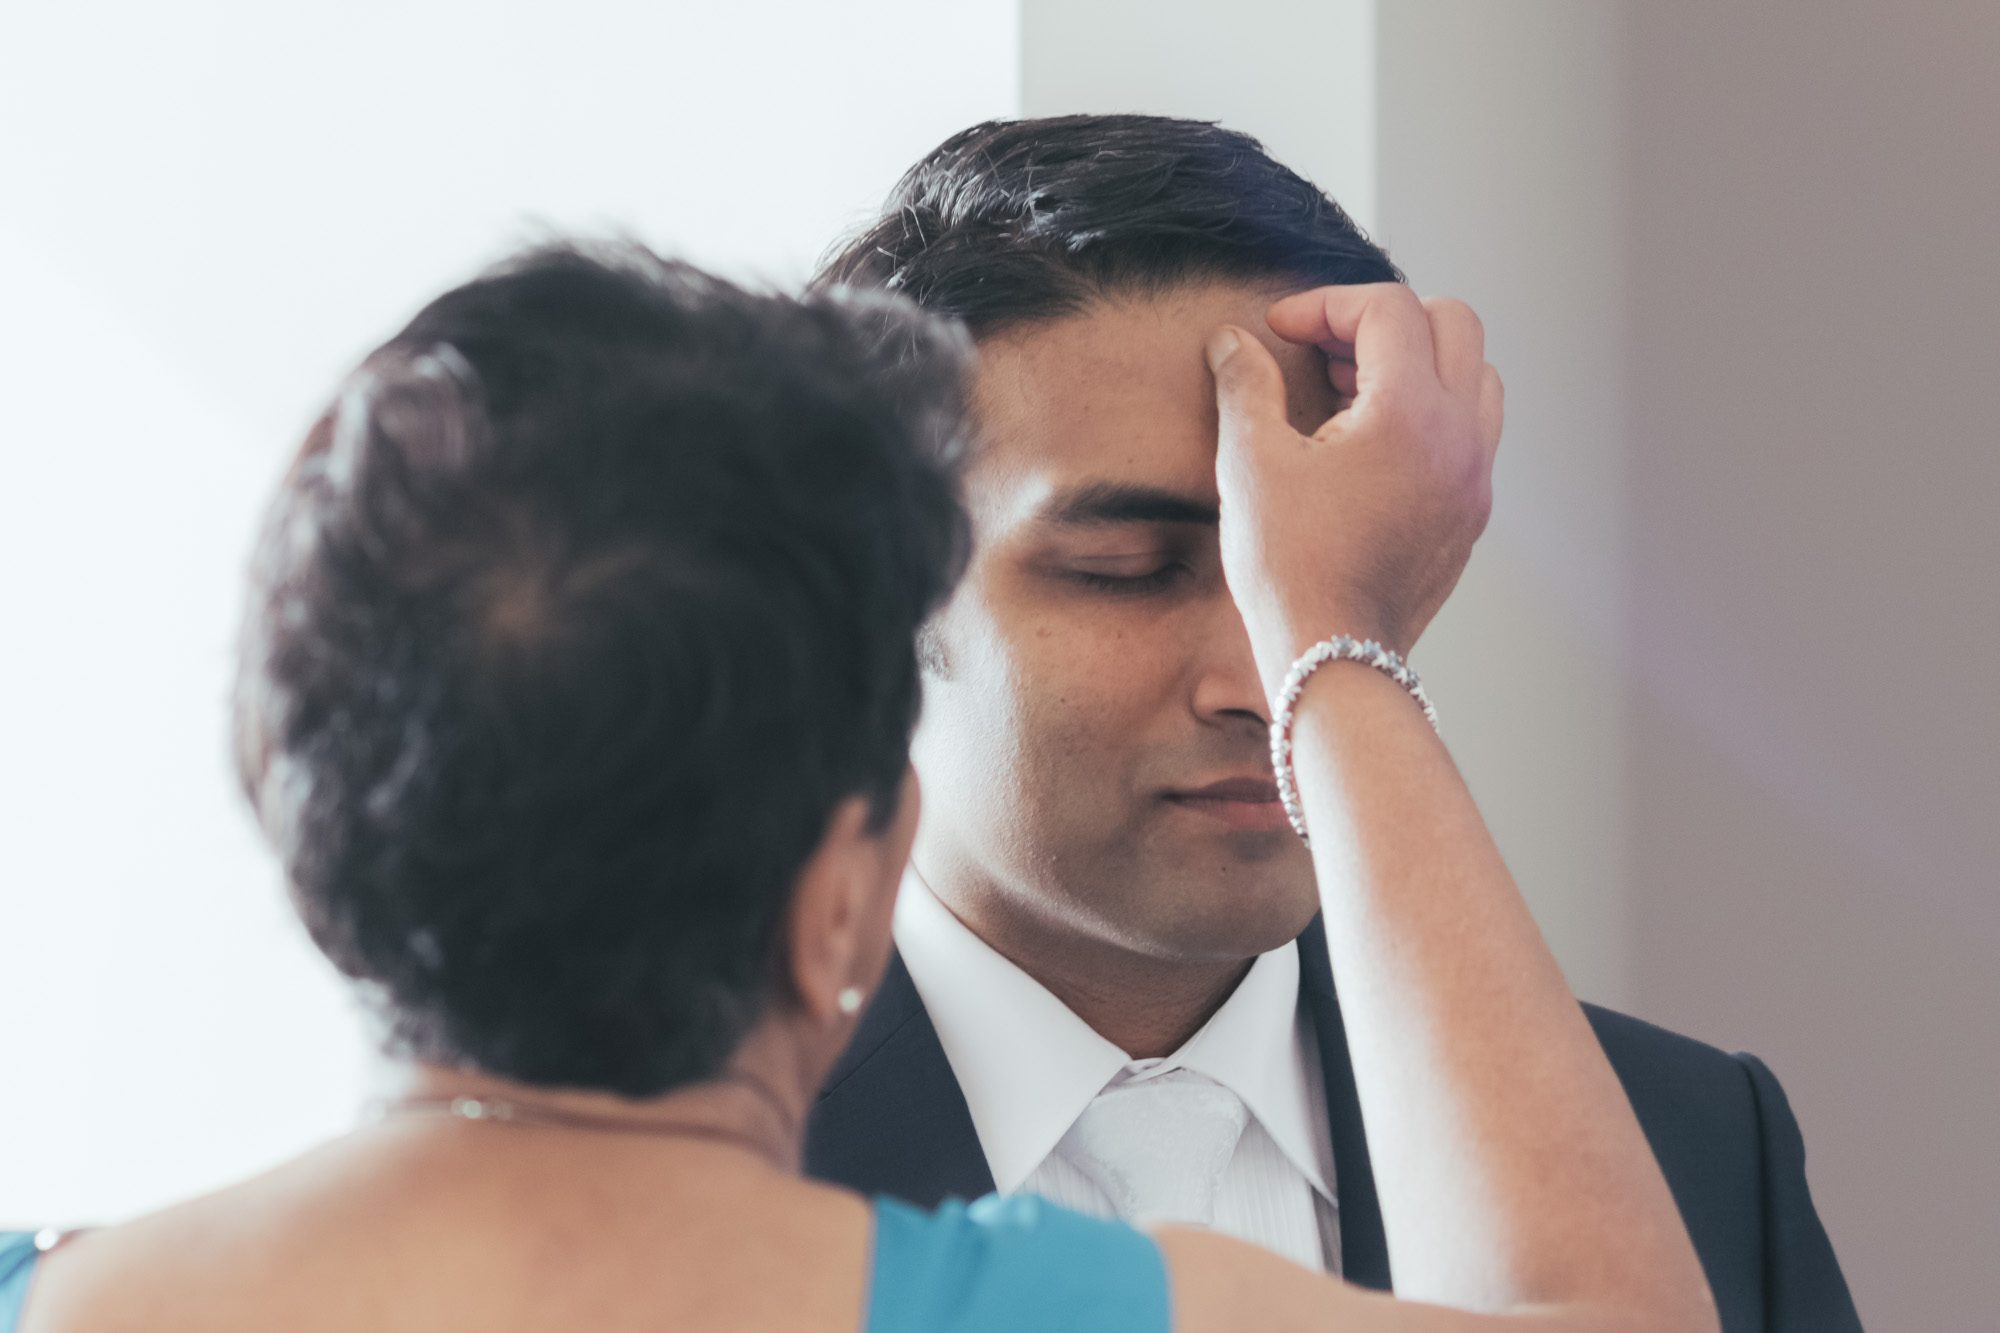 A traditional Sri Lankan blessing for the groom before his wedding.